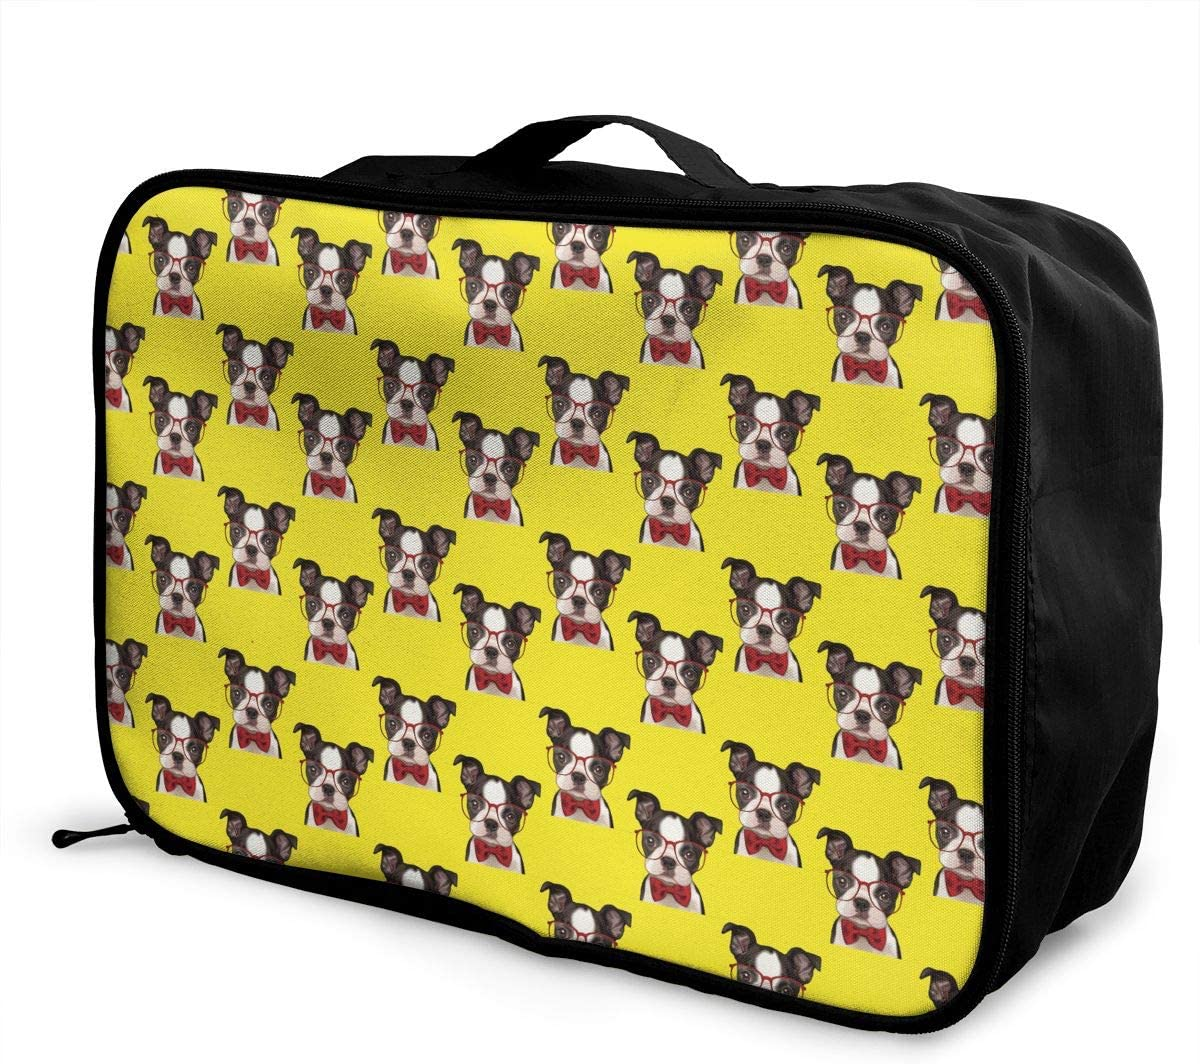 YueLJB French Bulldogs Lightweight Large Capacity Portable Luggage Bag Travel Duffel Bag Storage Carry Luggage Duffle Tote Bag